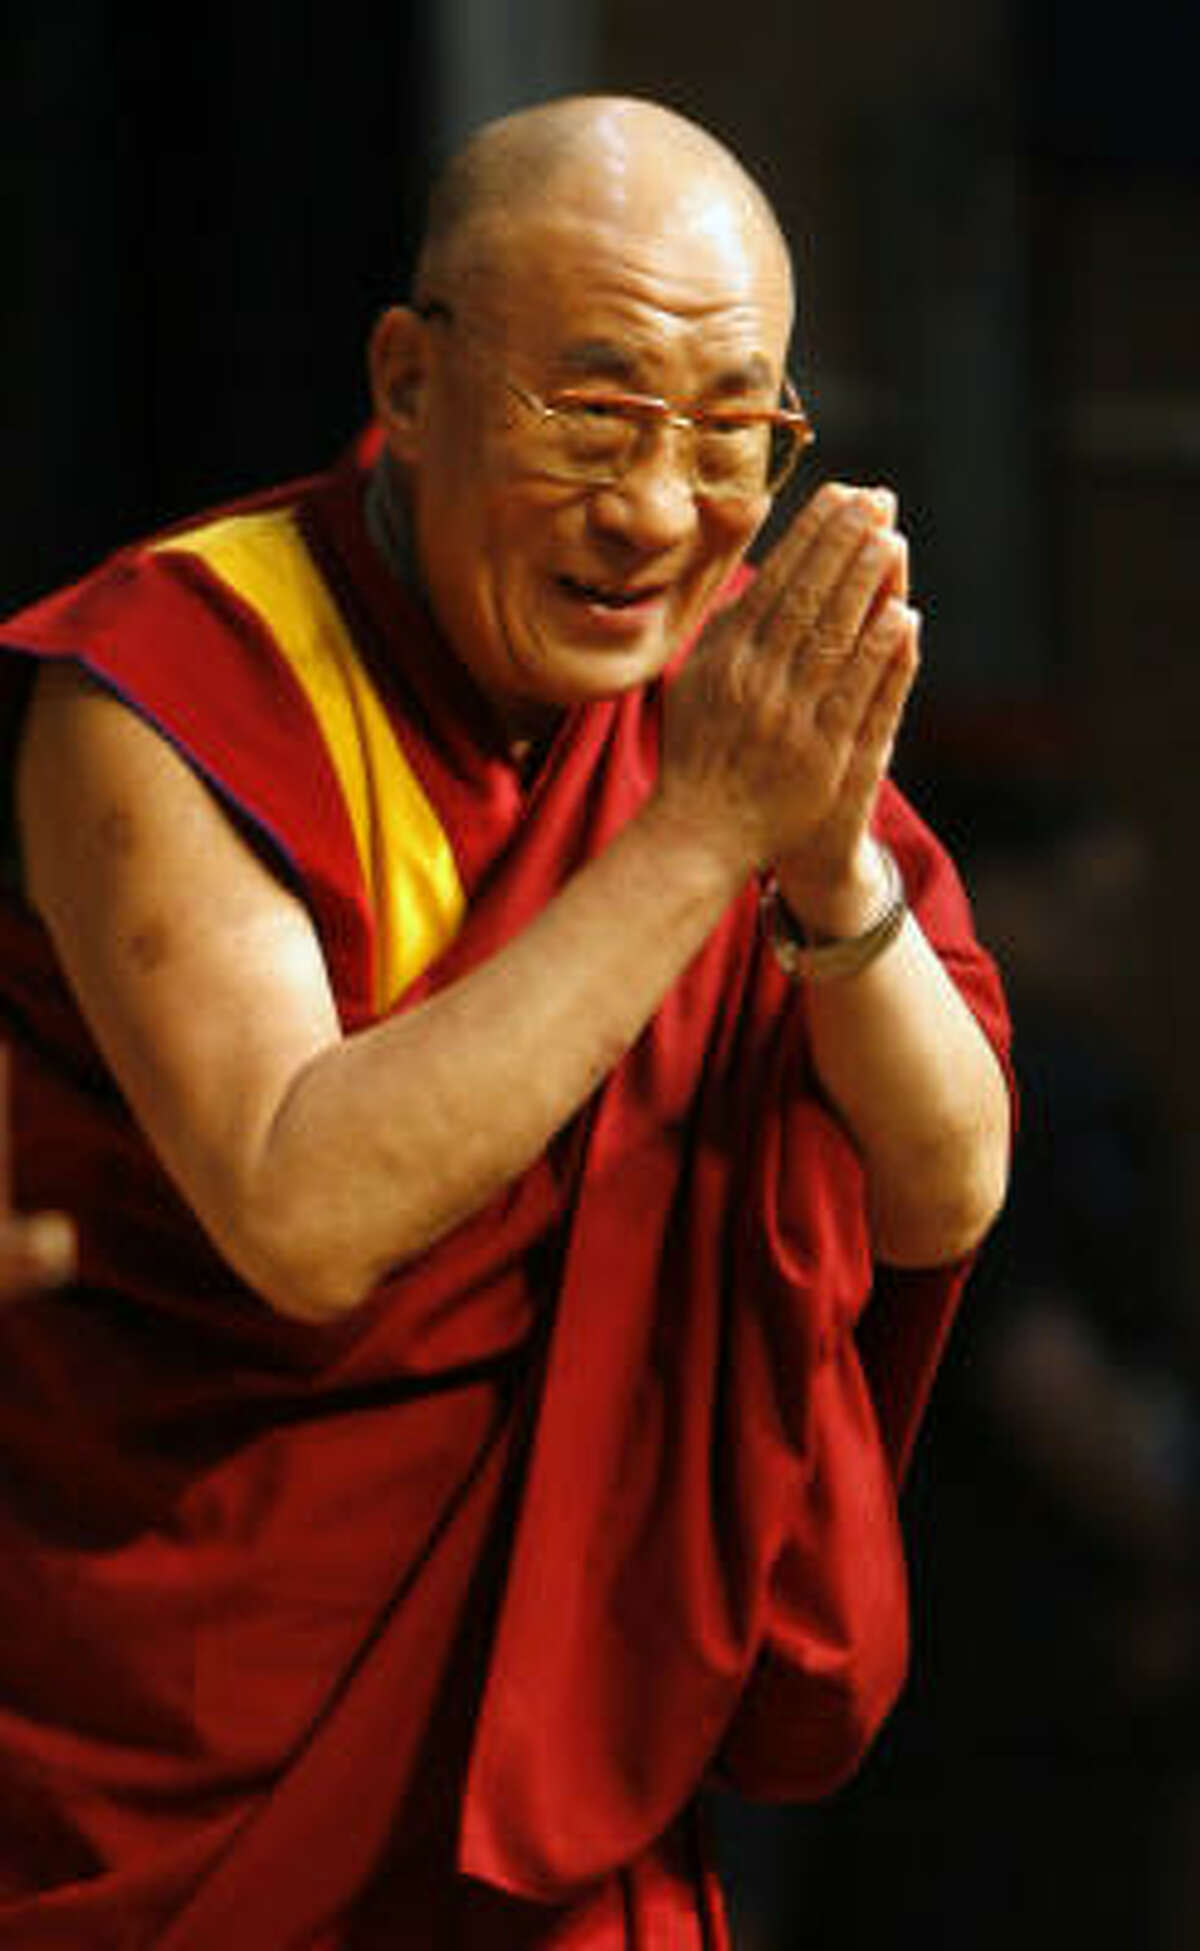 His Holiness the 14th Dalai Lama Tenzin Gyatso greets the crowd at Rice University's Autry Court Tuesday, May 1, 2007, in Houston.